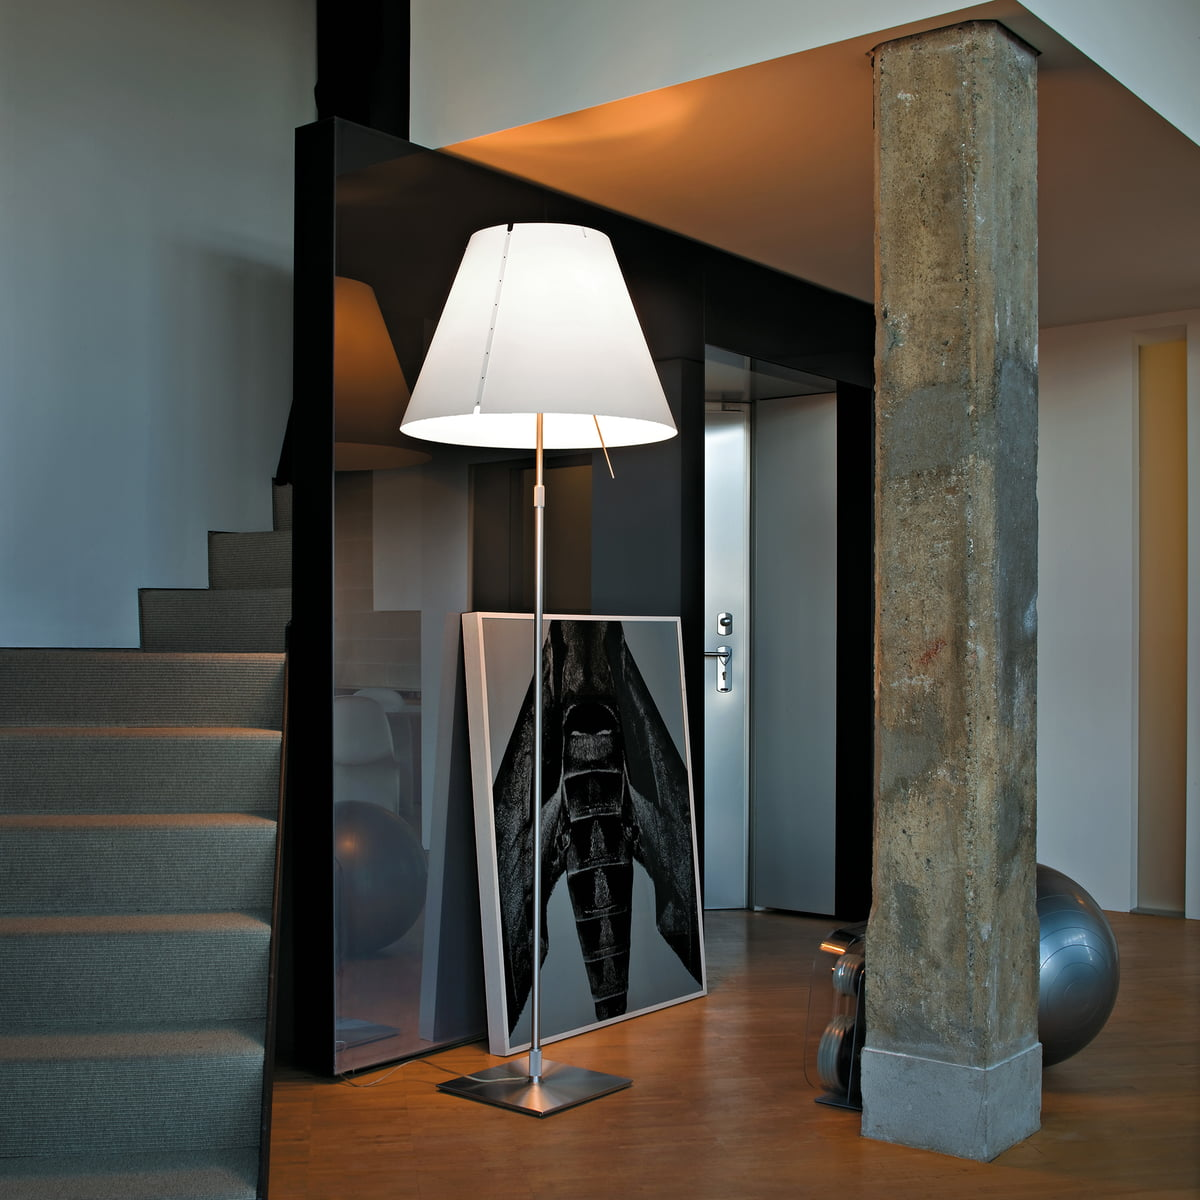 costanza standard lamp by luceplan connox. Black Bedroom Furniture Sets. Home Design Ideas